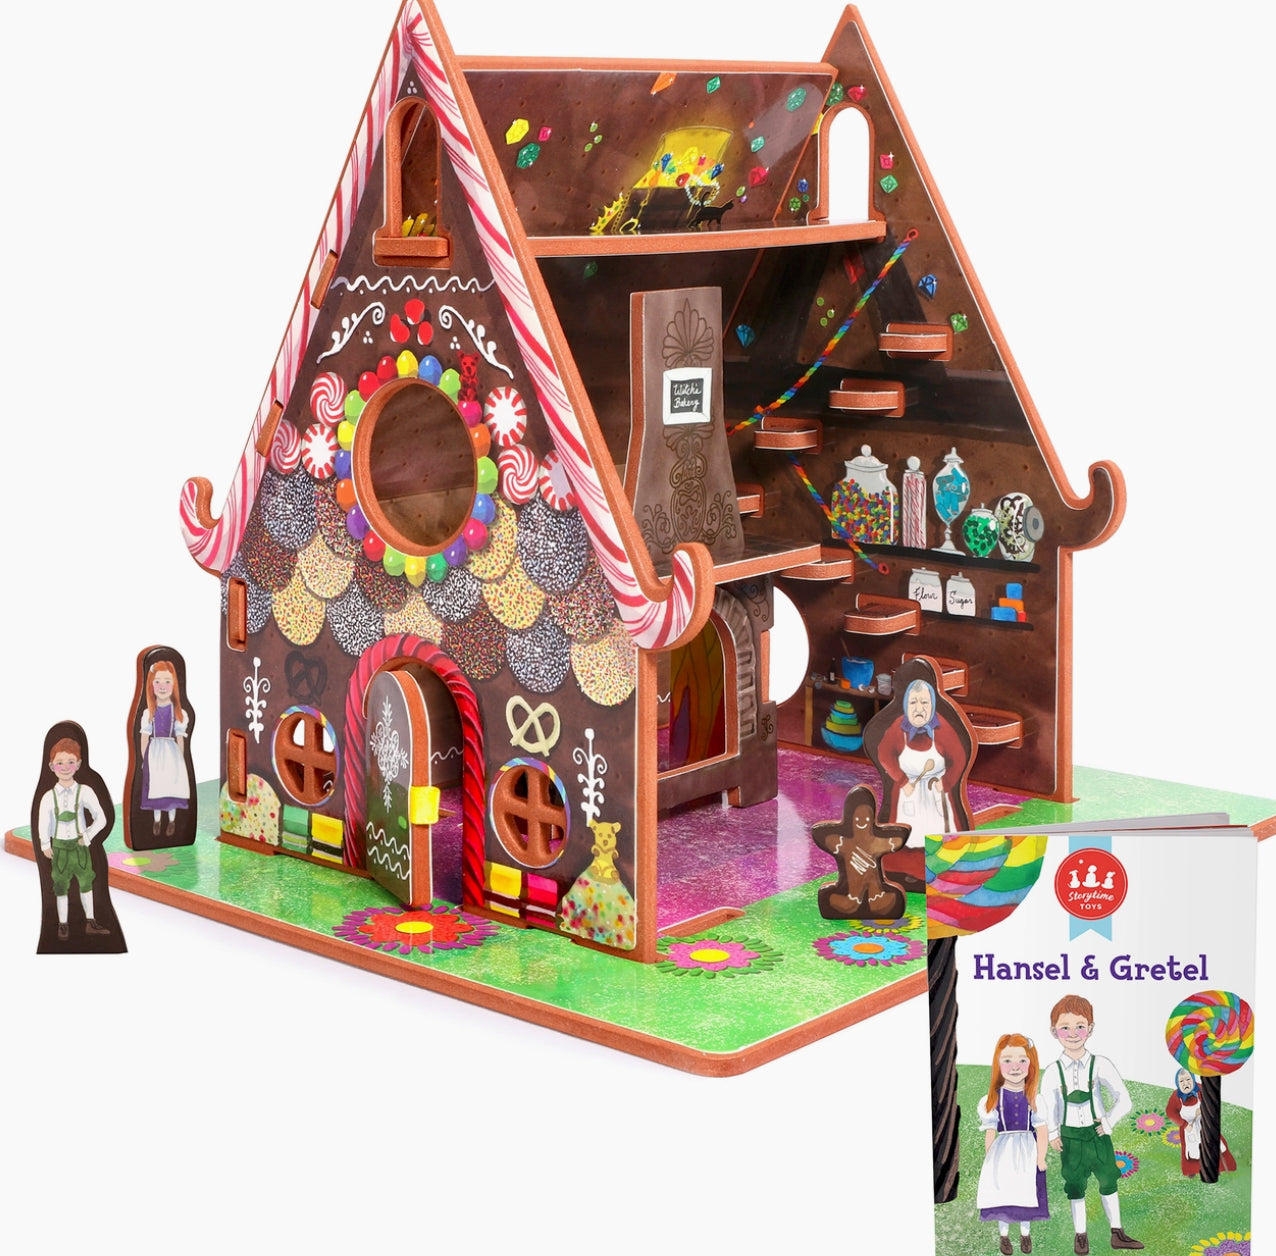 whirley pop popcorn maker